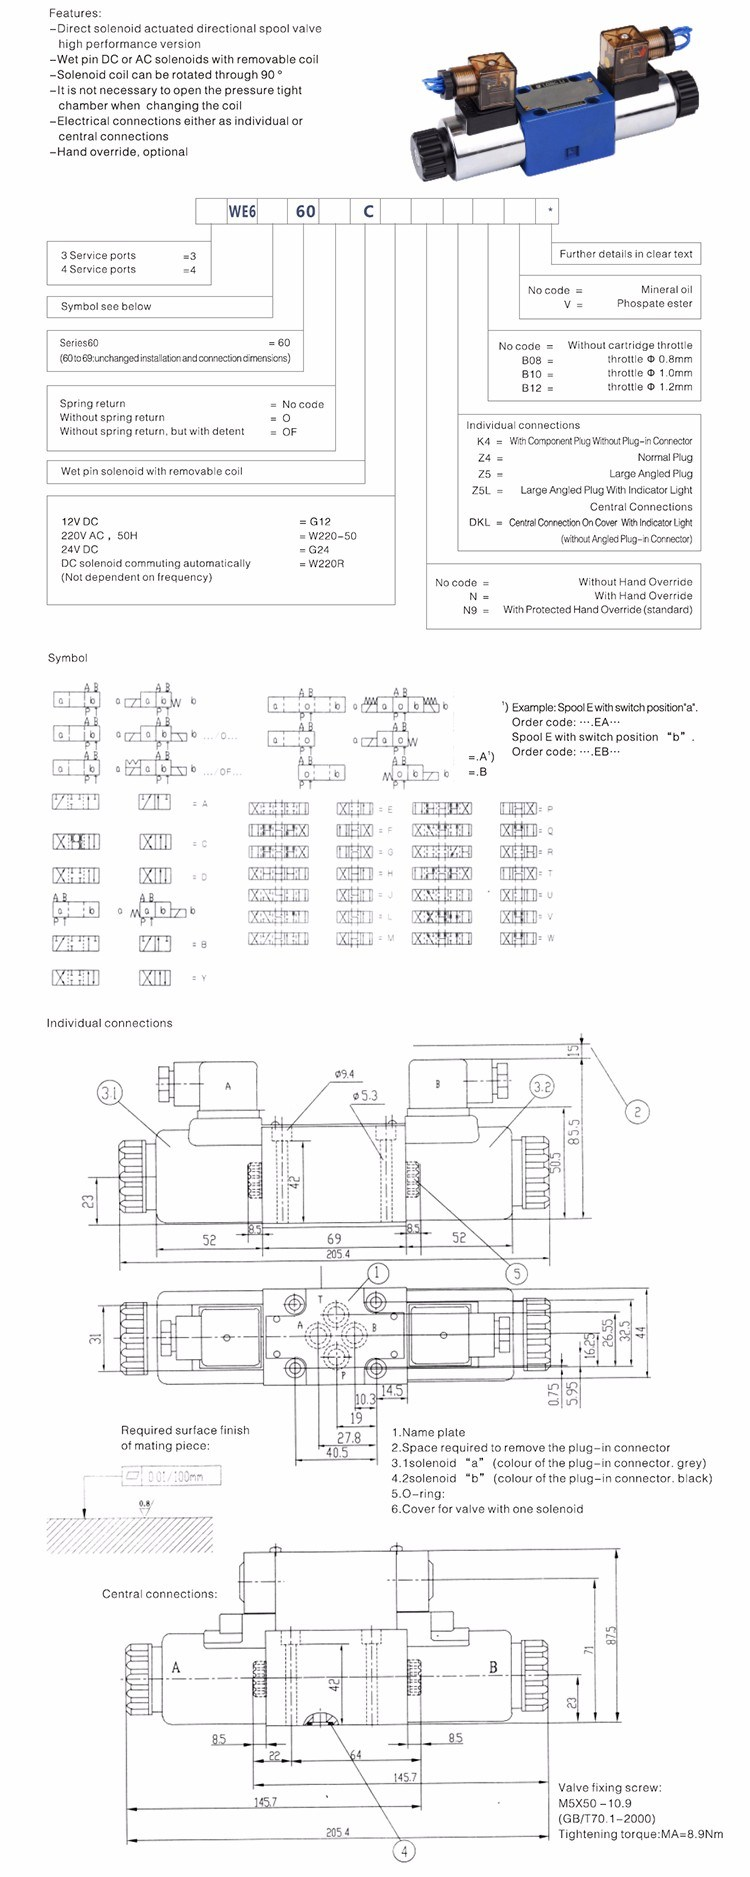 Dc 12v 3 Pin Plug Wiring Diagram French Electrical Foxconn Fan Wire G24 Diagrams Schematics 4 Prong 4we6 24v Series Rexroth Hydraulic